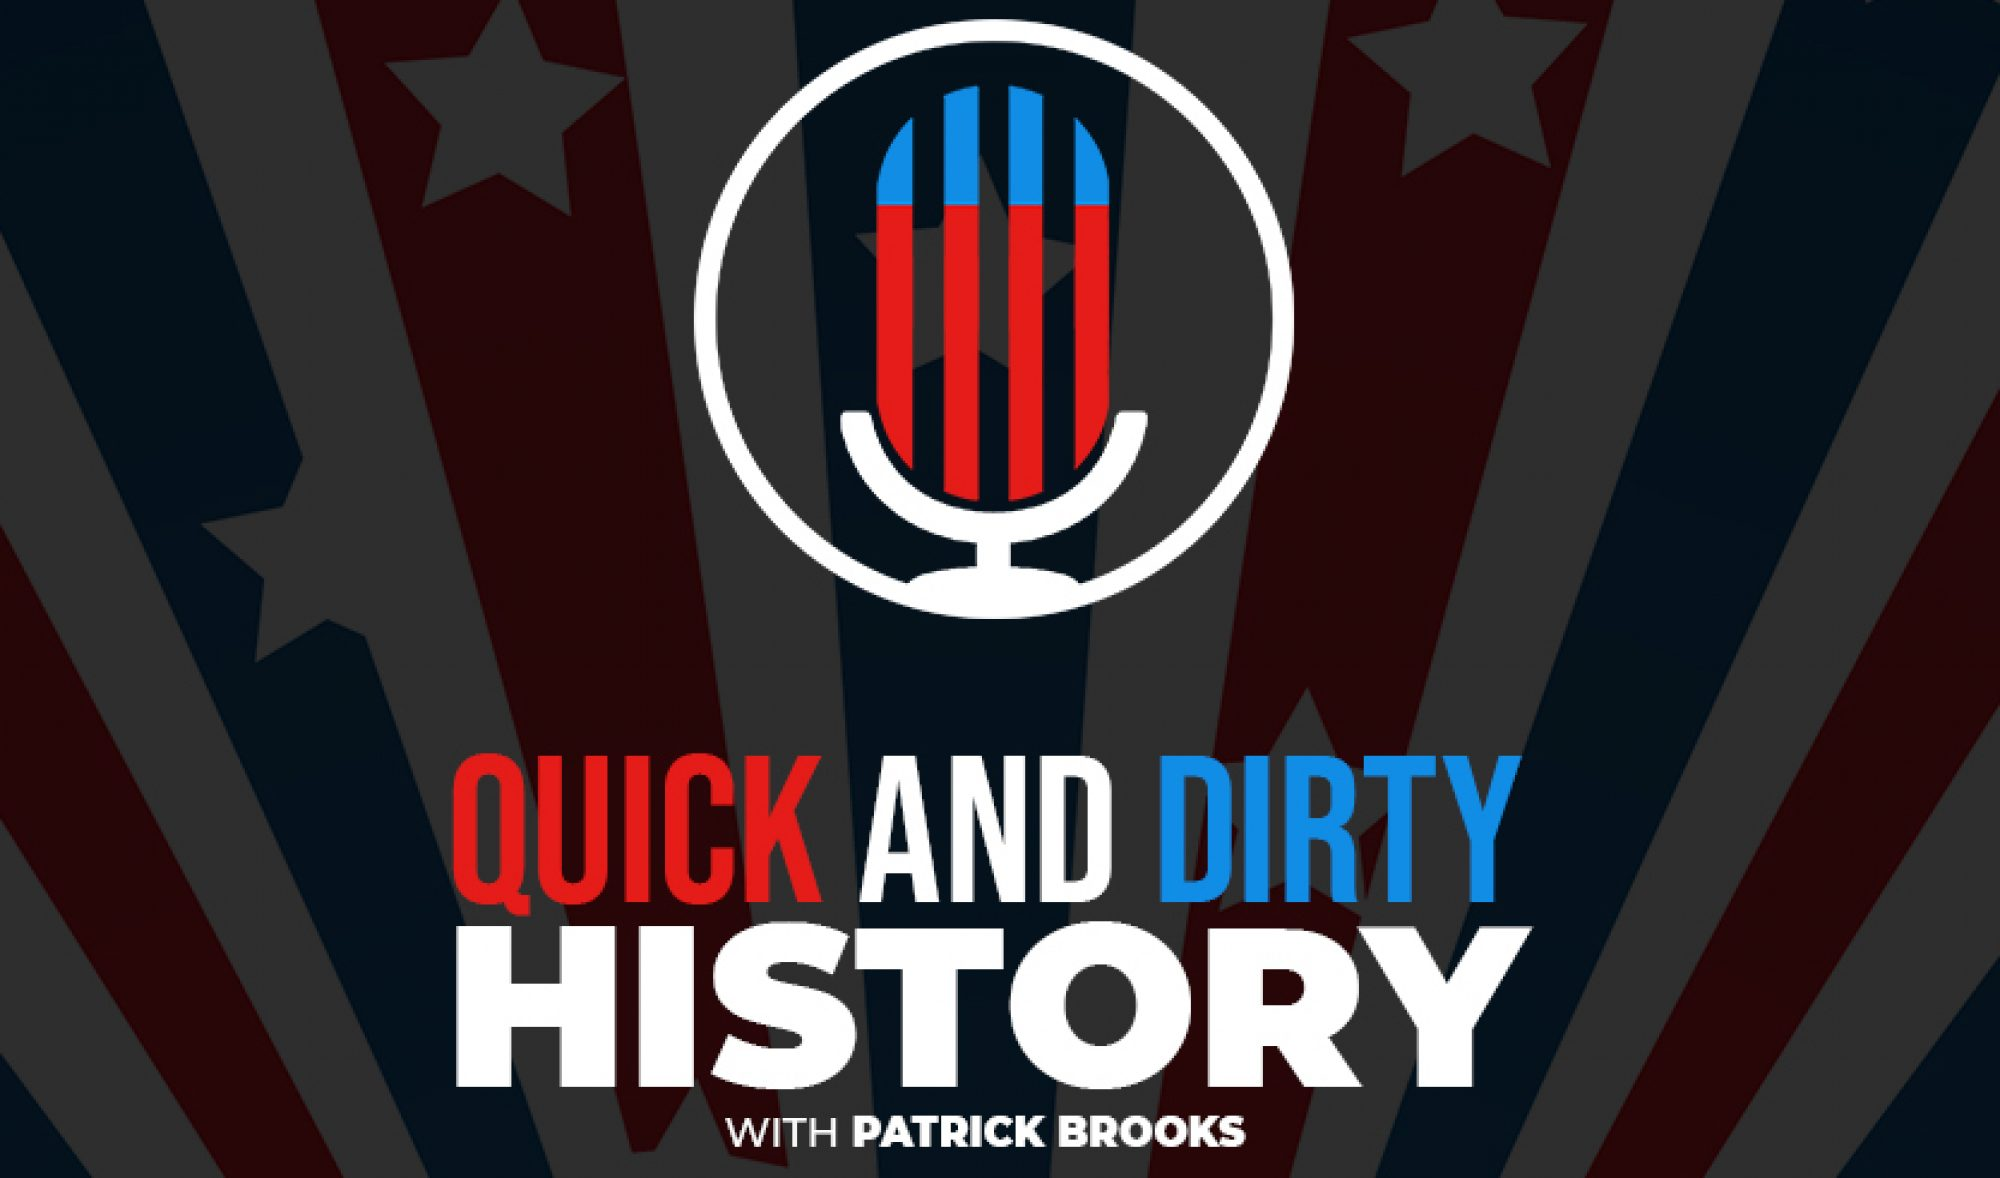 Quick and Dirty History